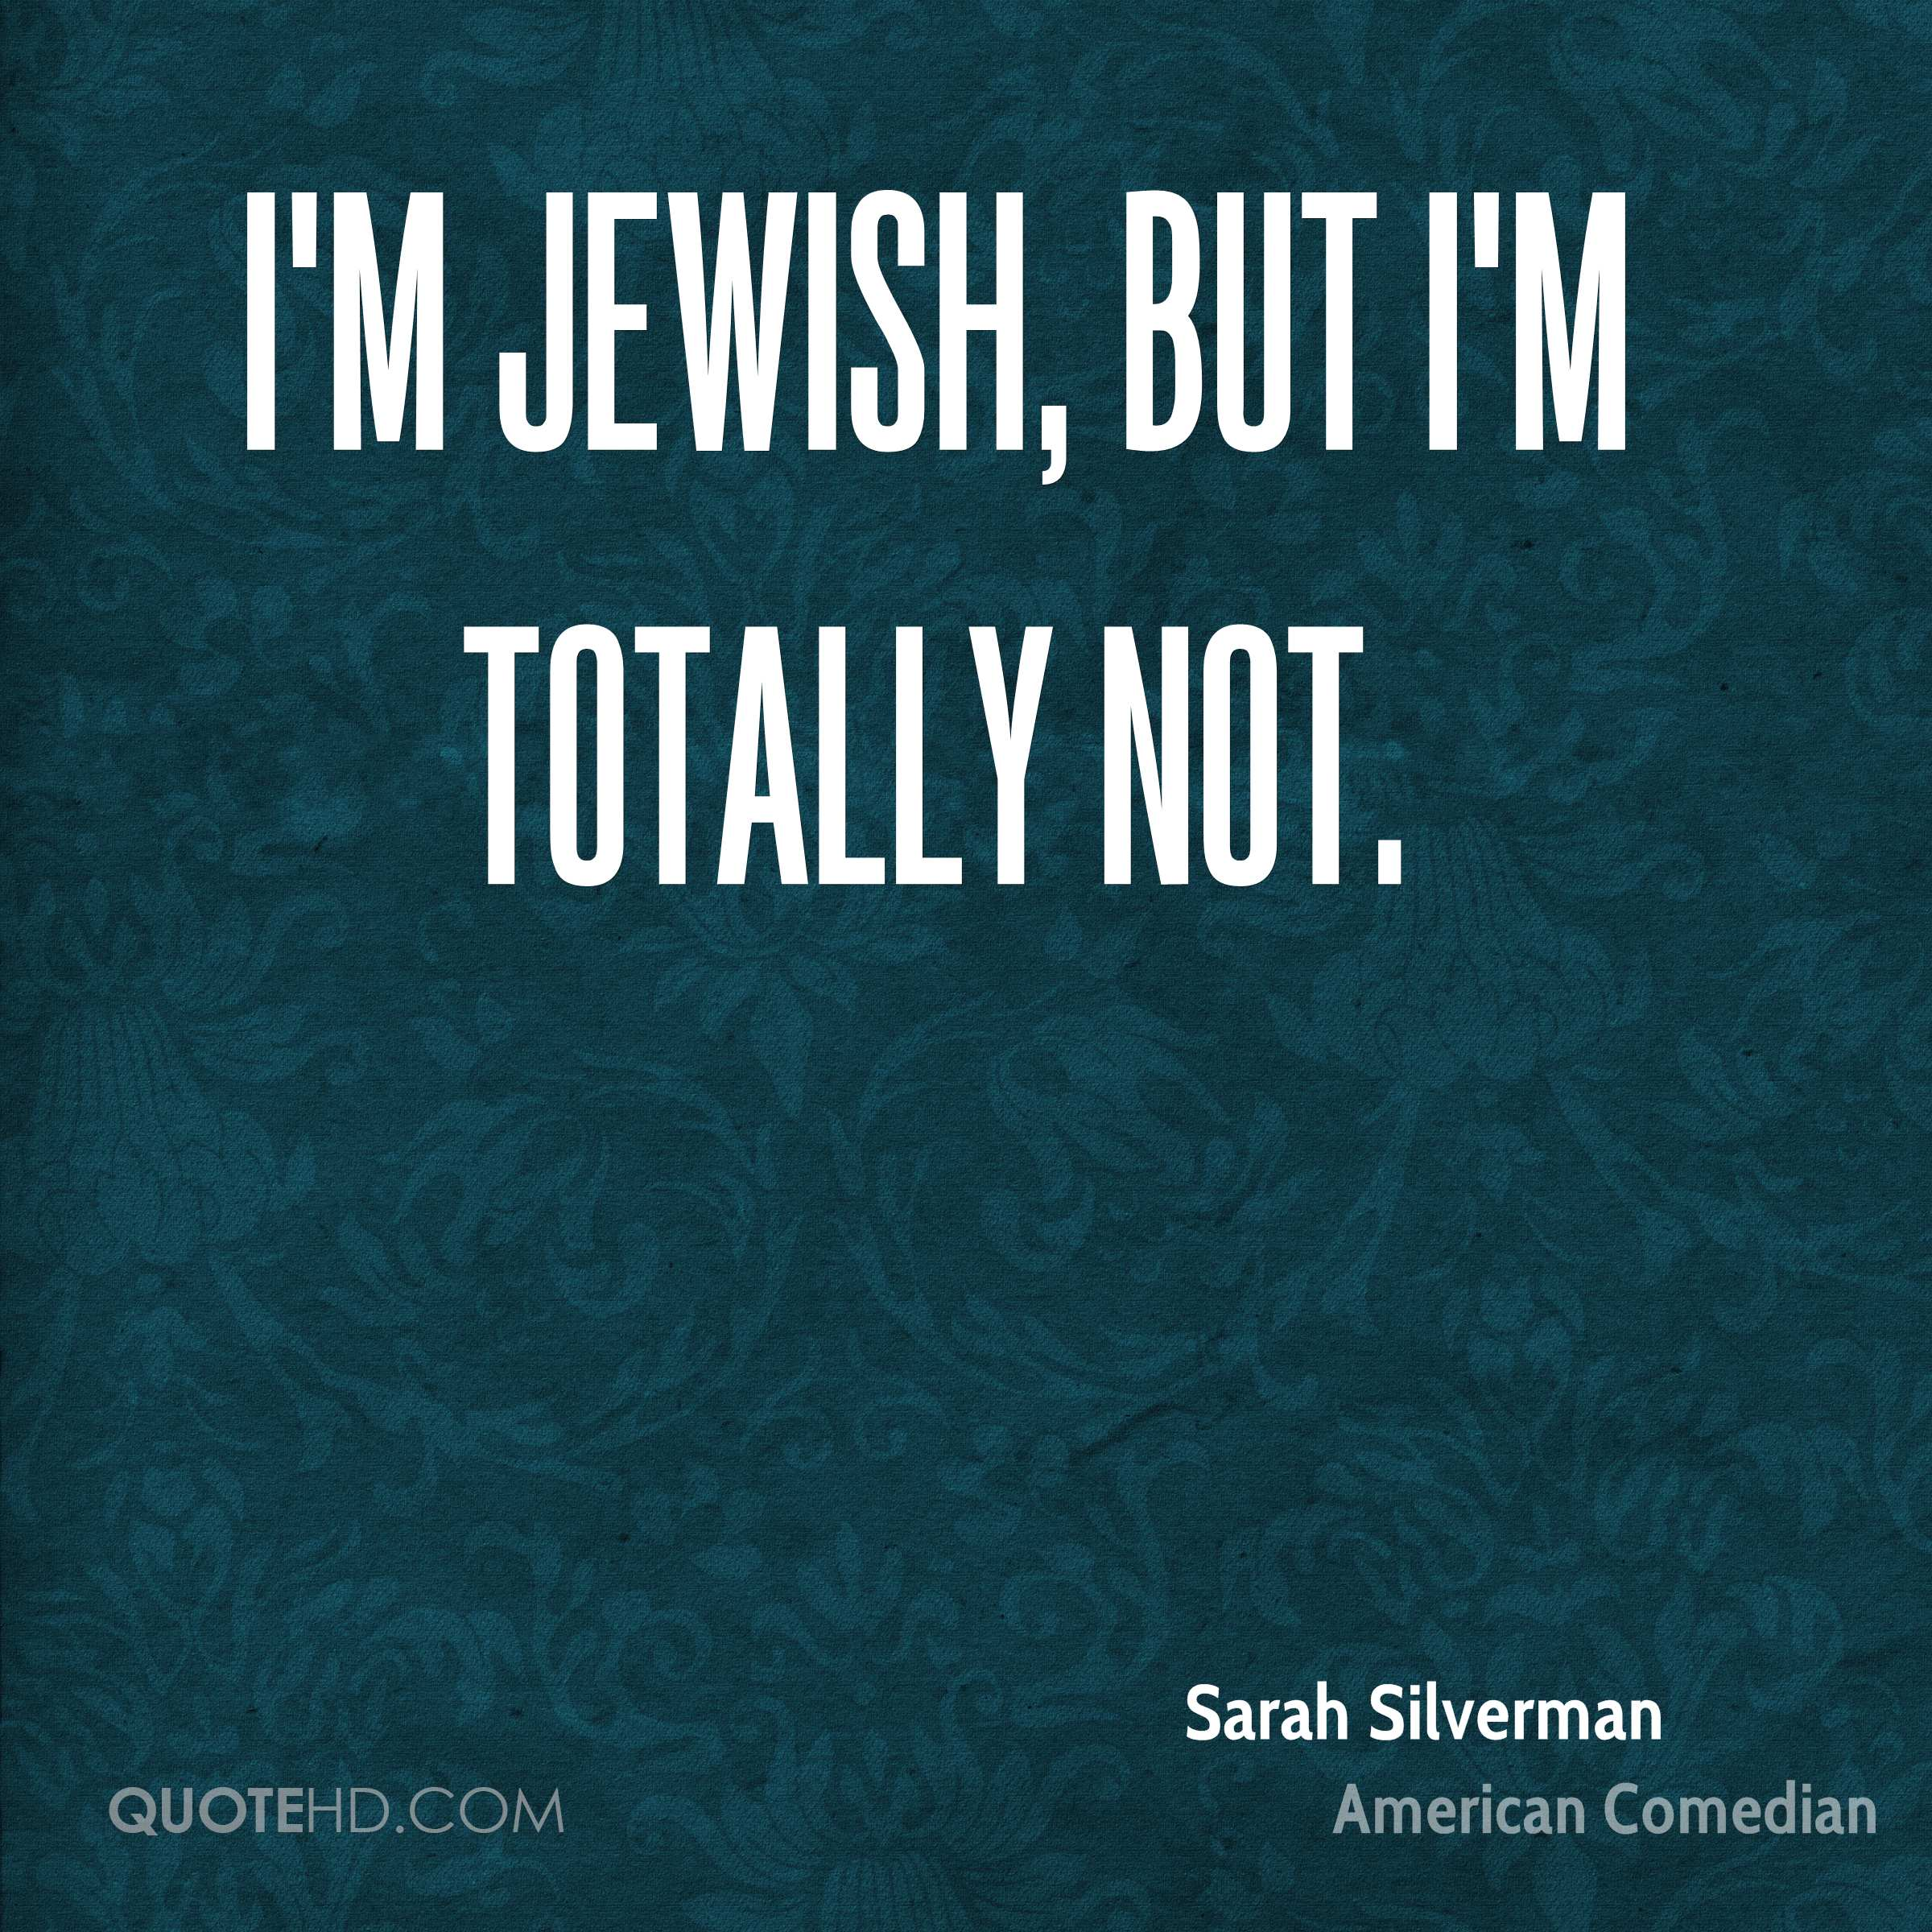 I'm Jewish, but I'm totally not.